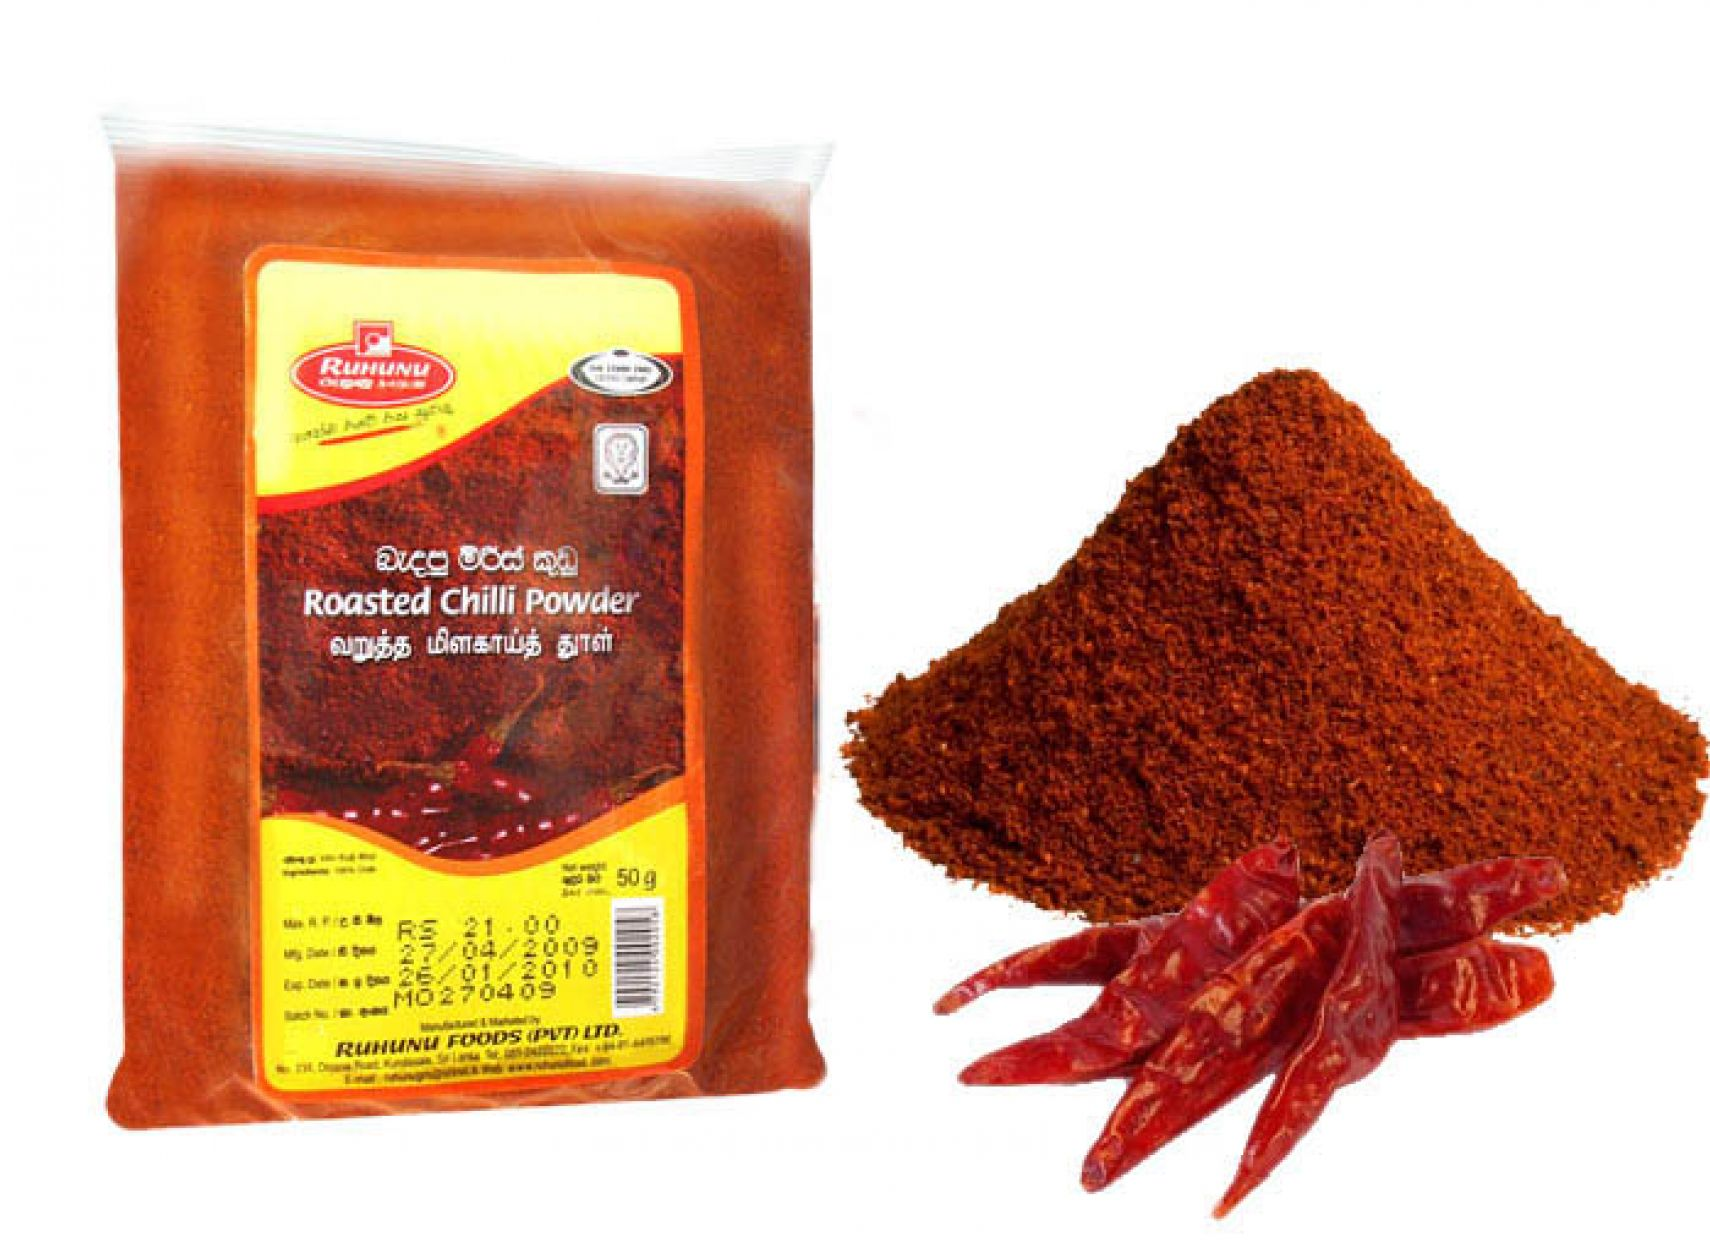 Ruhunu Roasted Chilli Powder